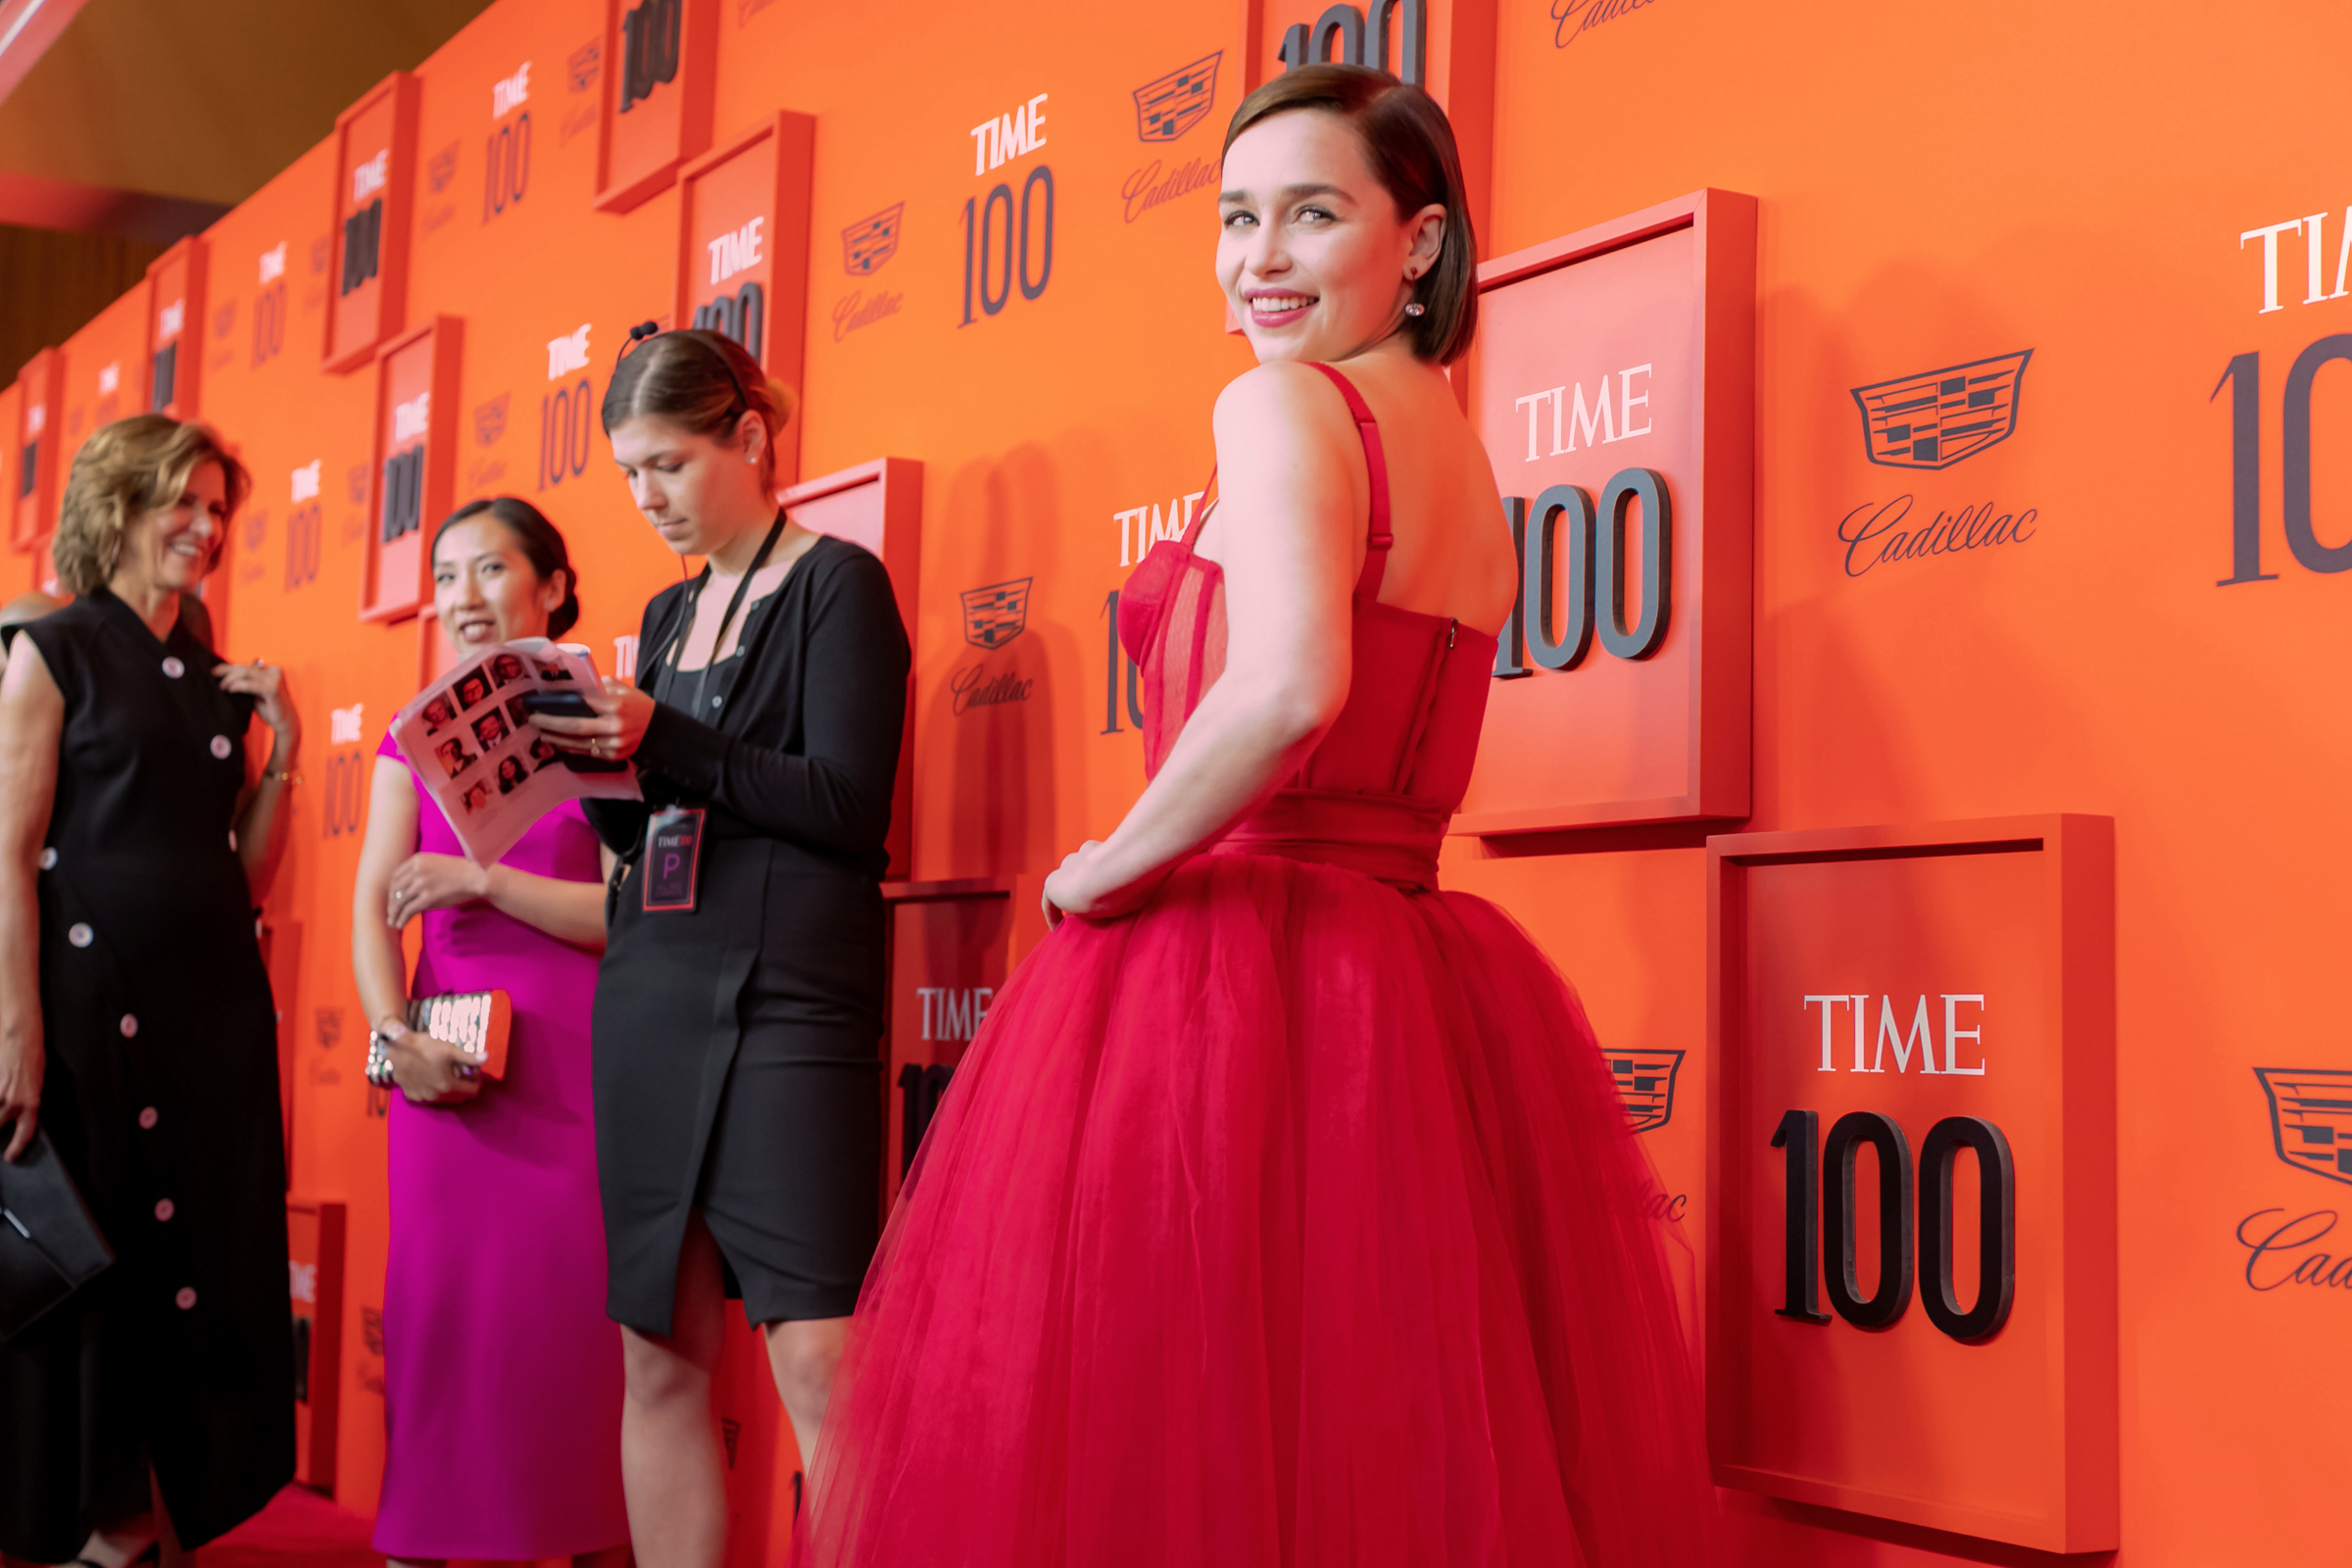 Emilia Clarke at the Time 100 Gala at Jazz at Lincoln Center in New York City on April 23, 2019.